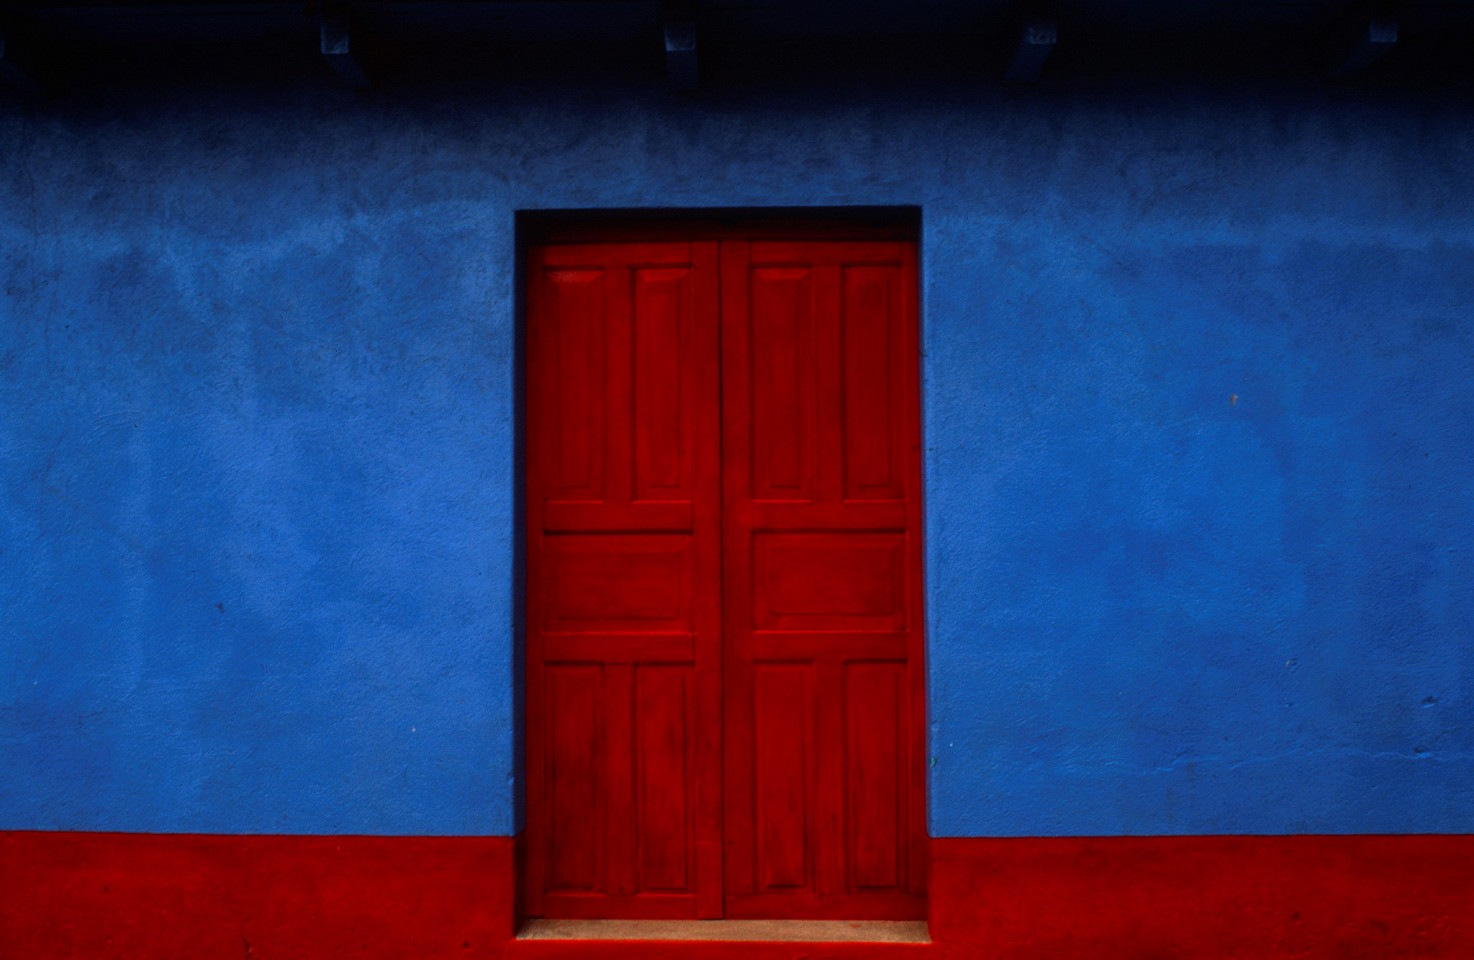 Jeffrey Becom ,    Azul y Rojo, San Juan Ostuncalco, Quezaltenango, Guatemala  ,  2007     Ilfochrome print ,  16 x 20 in.     Signed, dated, titled & numbered in edition of 25, © Jeffrey Becom     $1,500